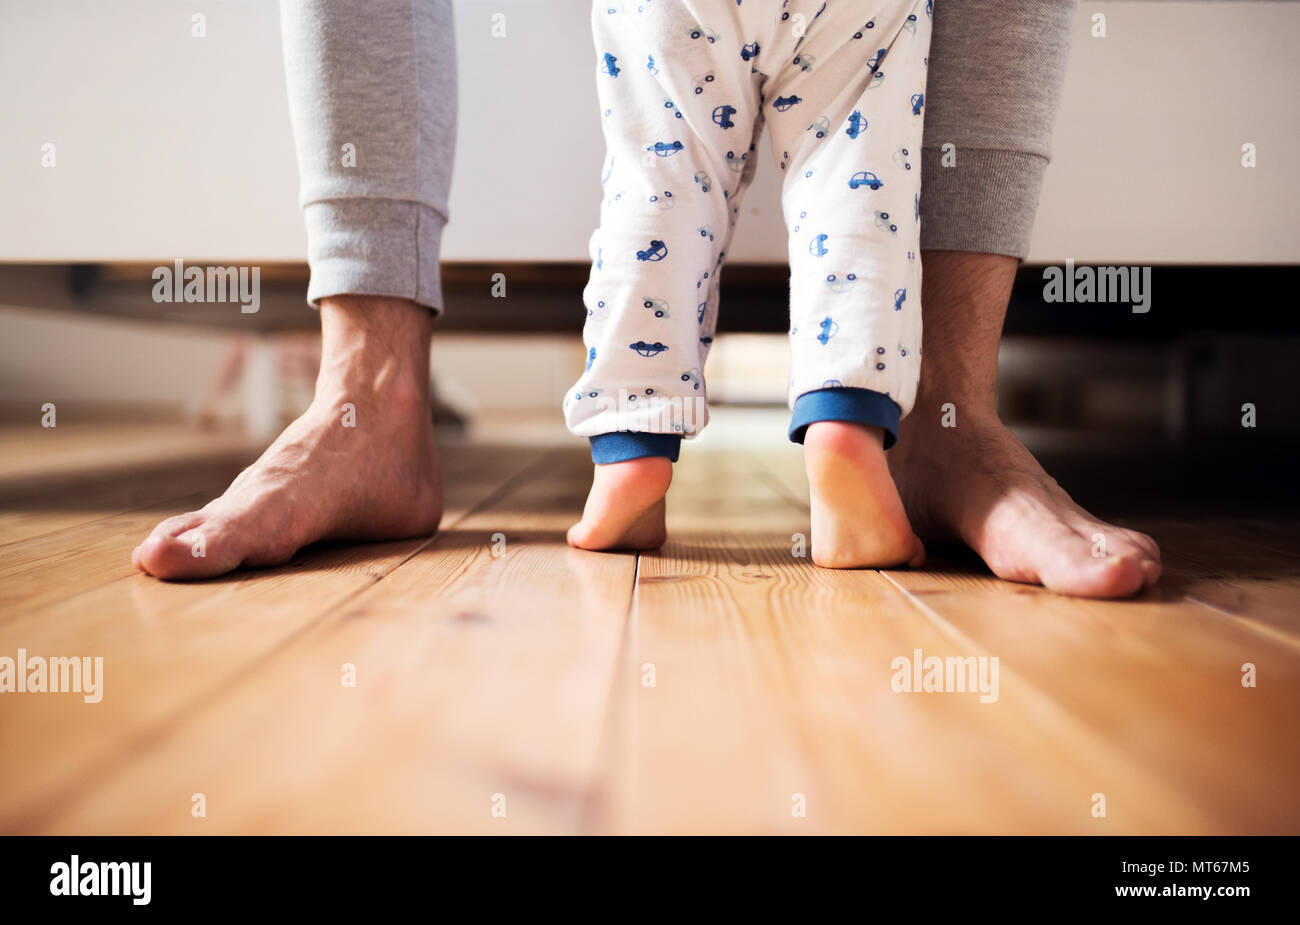 Legs of father and a toddler boy standing on the floor in bedroom at home. - Stock Image